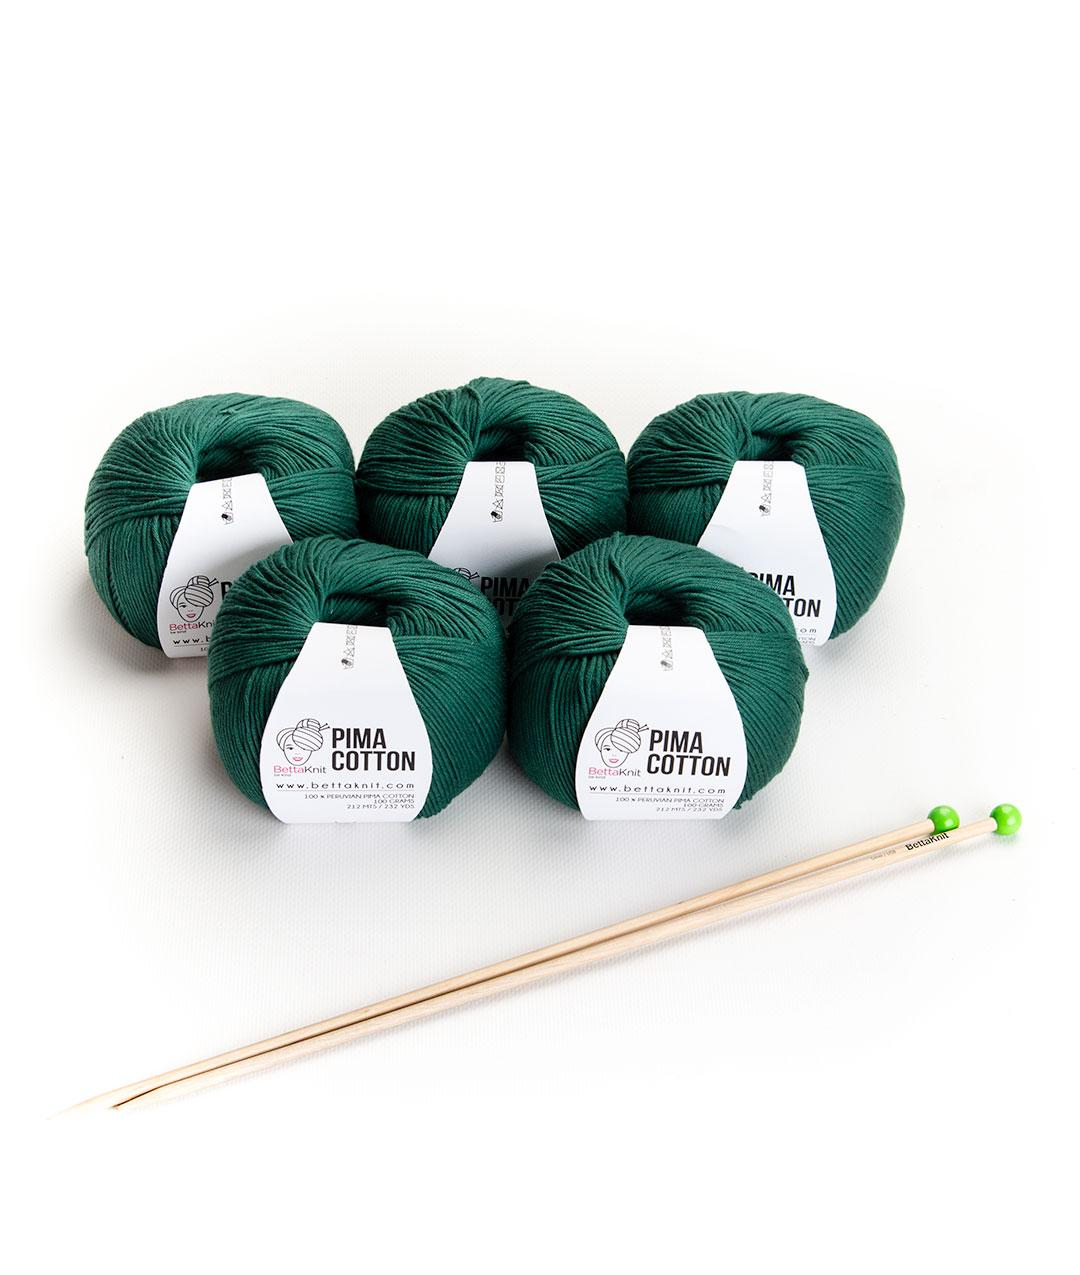 Yarn boxes with Needles  - Pack of Yarn - Pima Cotton Box - 5 balls + needles - 1